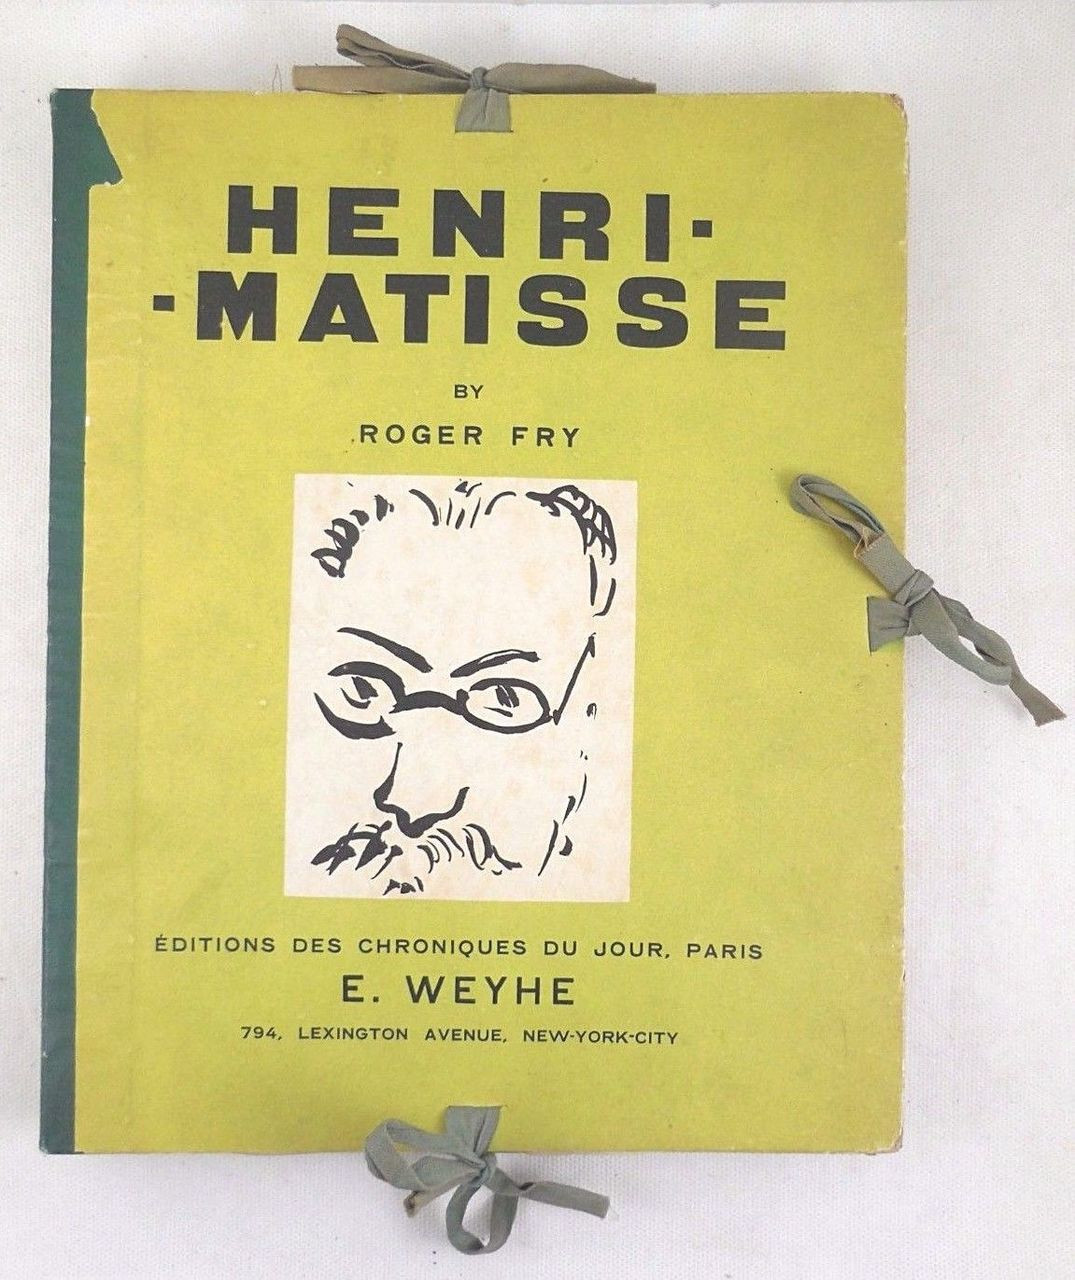 HENRI MATISSE, by Roger Fry - 1930 [French Ltd Ed, 178/650]